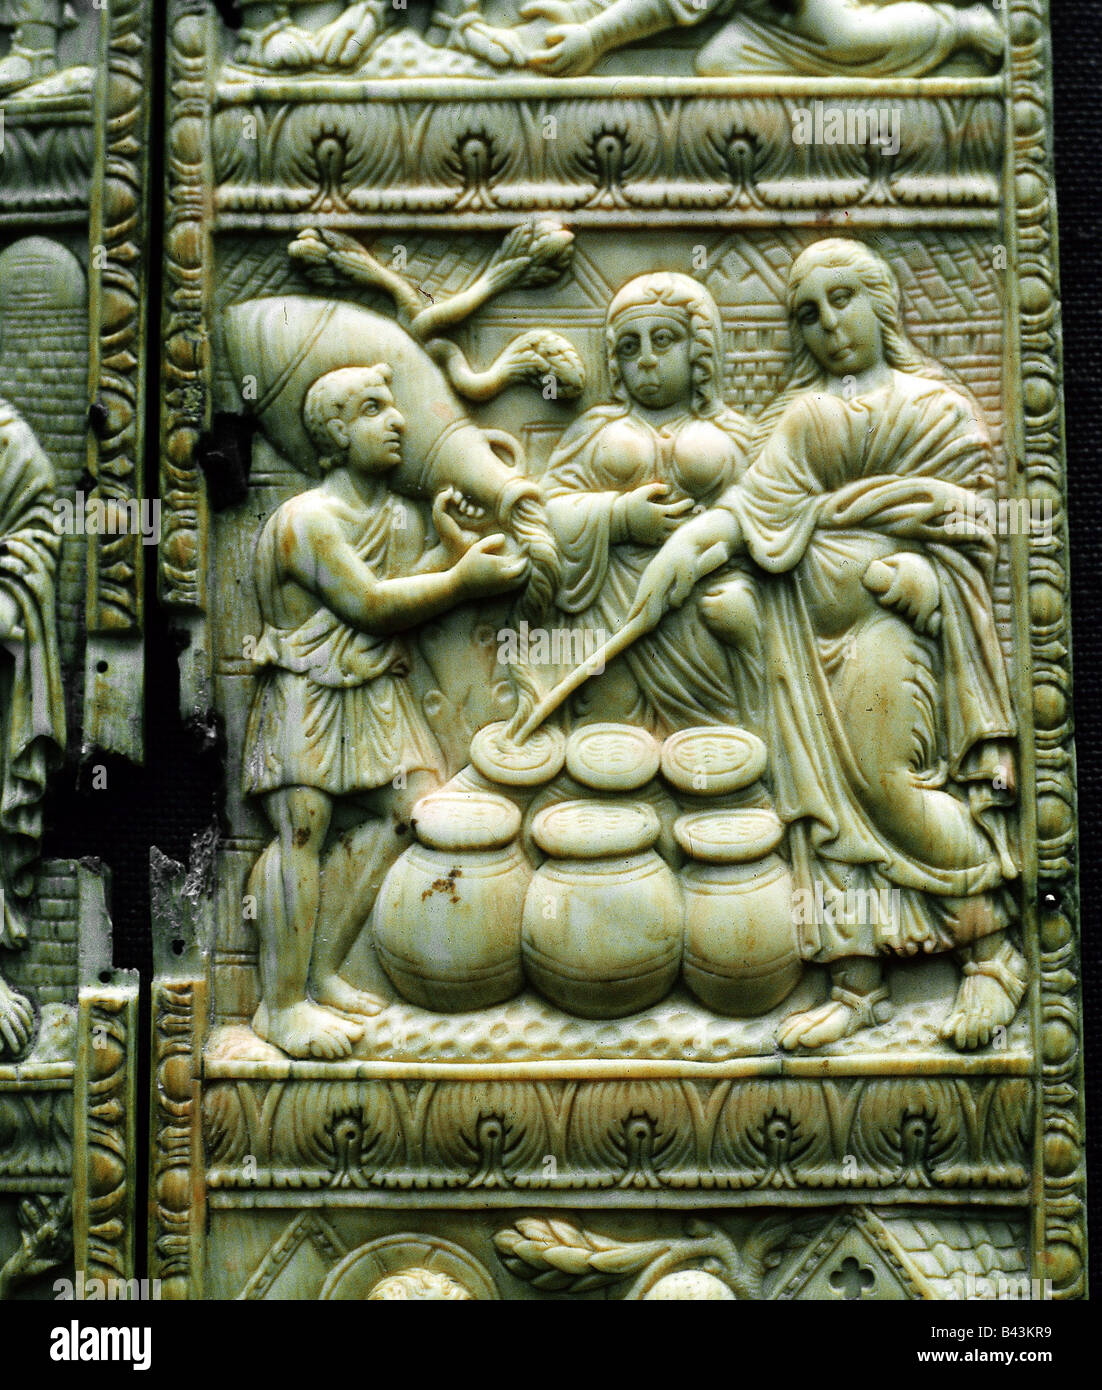 fine arts, Byzantine art, relief, depicting the Wedding at Cana, miracle, water to wine, ivory, altar, detail, 5th - Stock Image